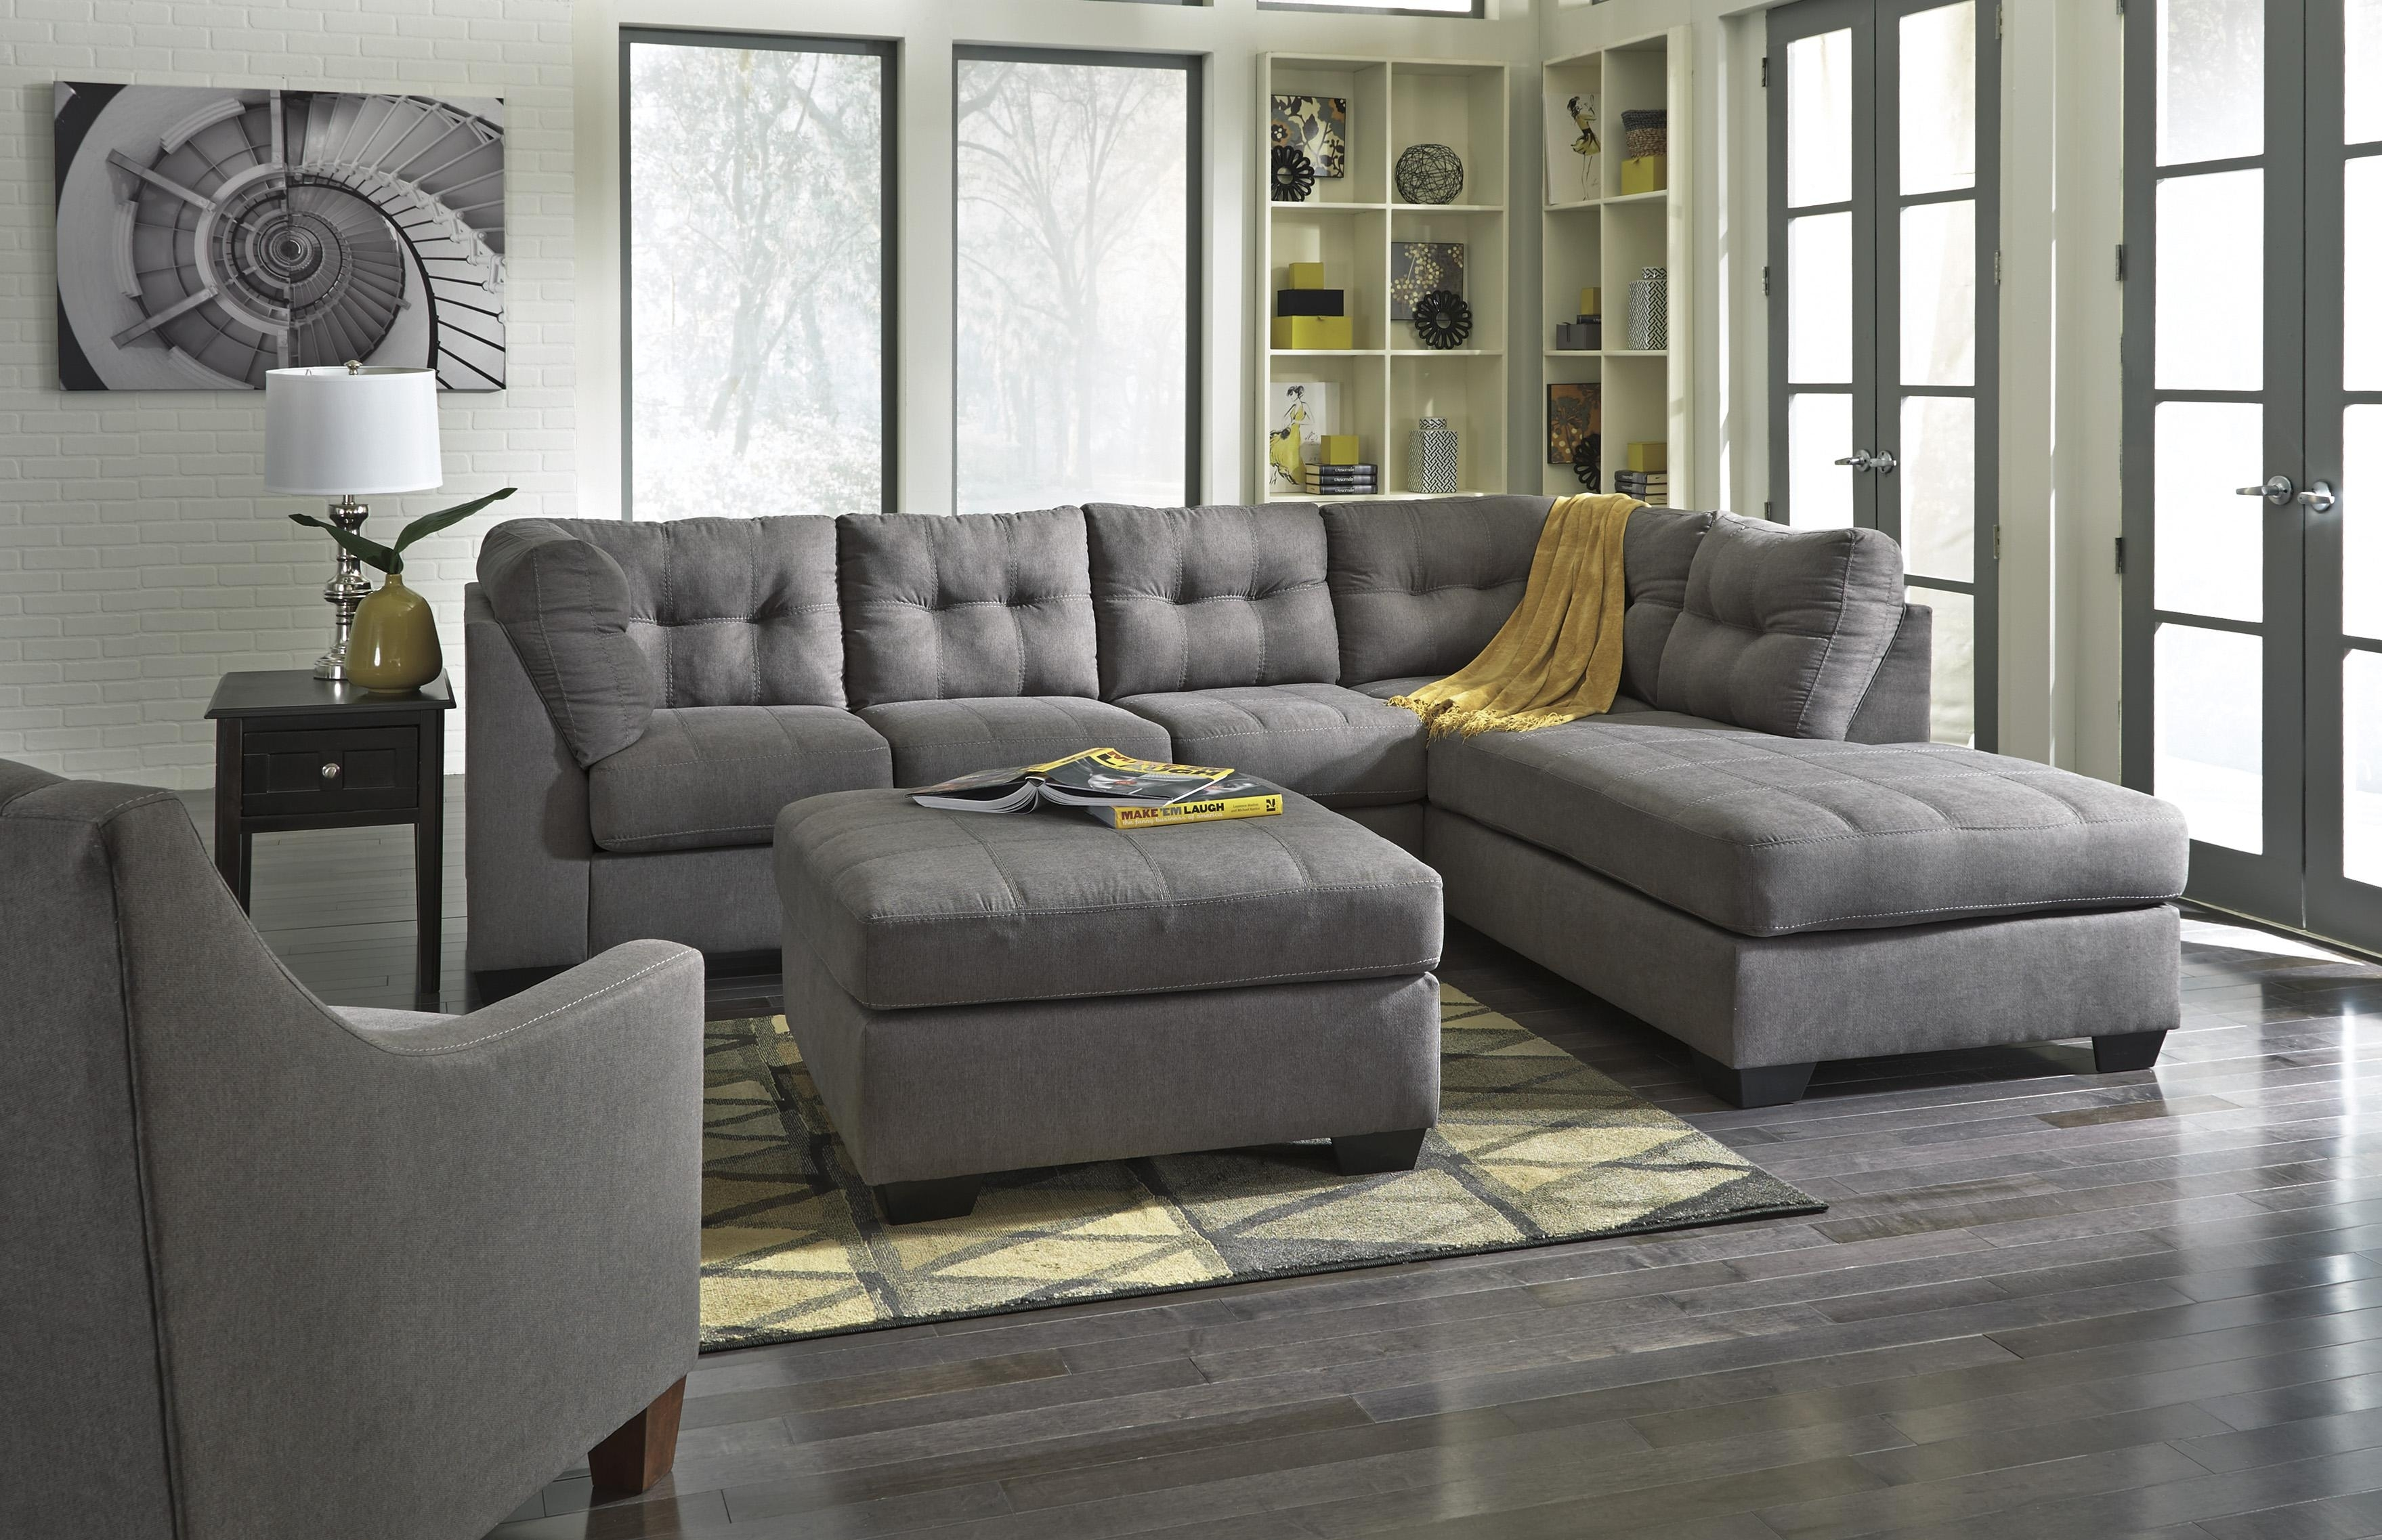 Jody - Charcoal 2-Piece Sectional With Right Chaise | Rotmans intended for Sectional Sofas With 2 Chaises (Image 5 of 10)